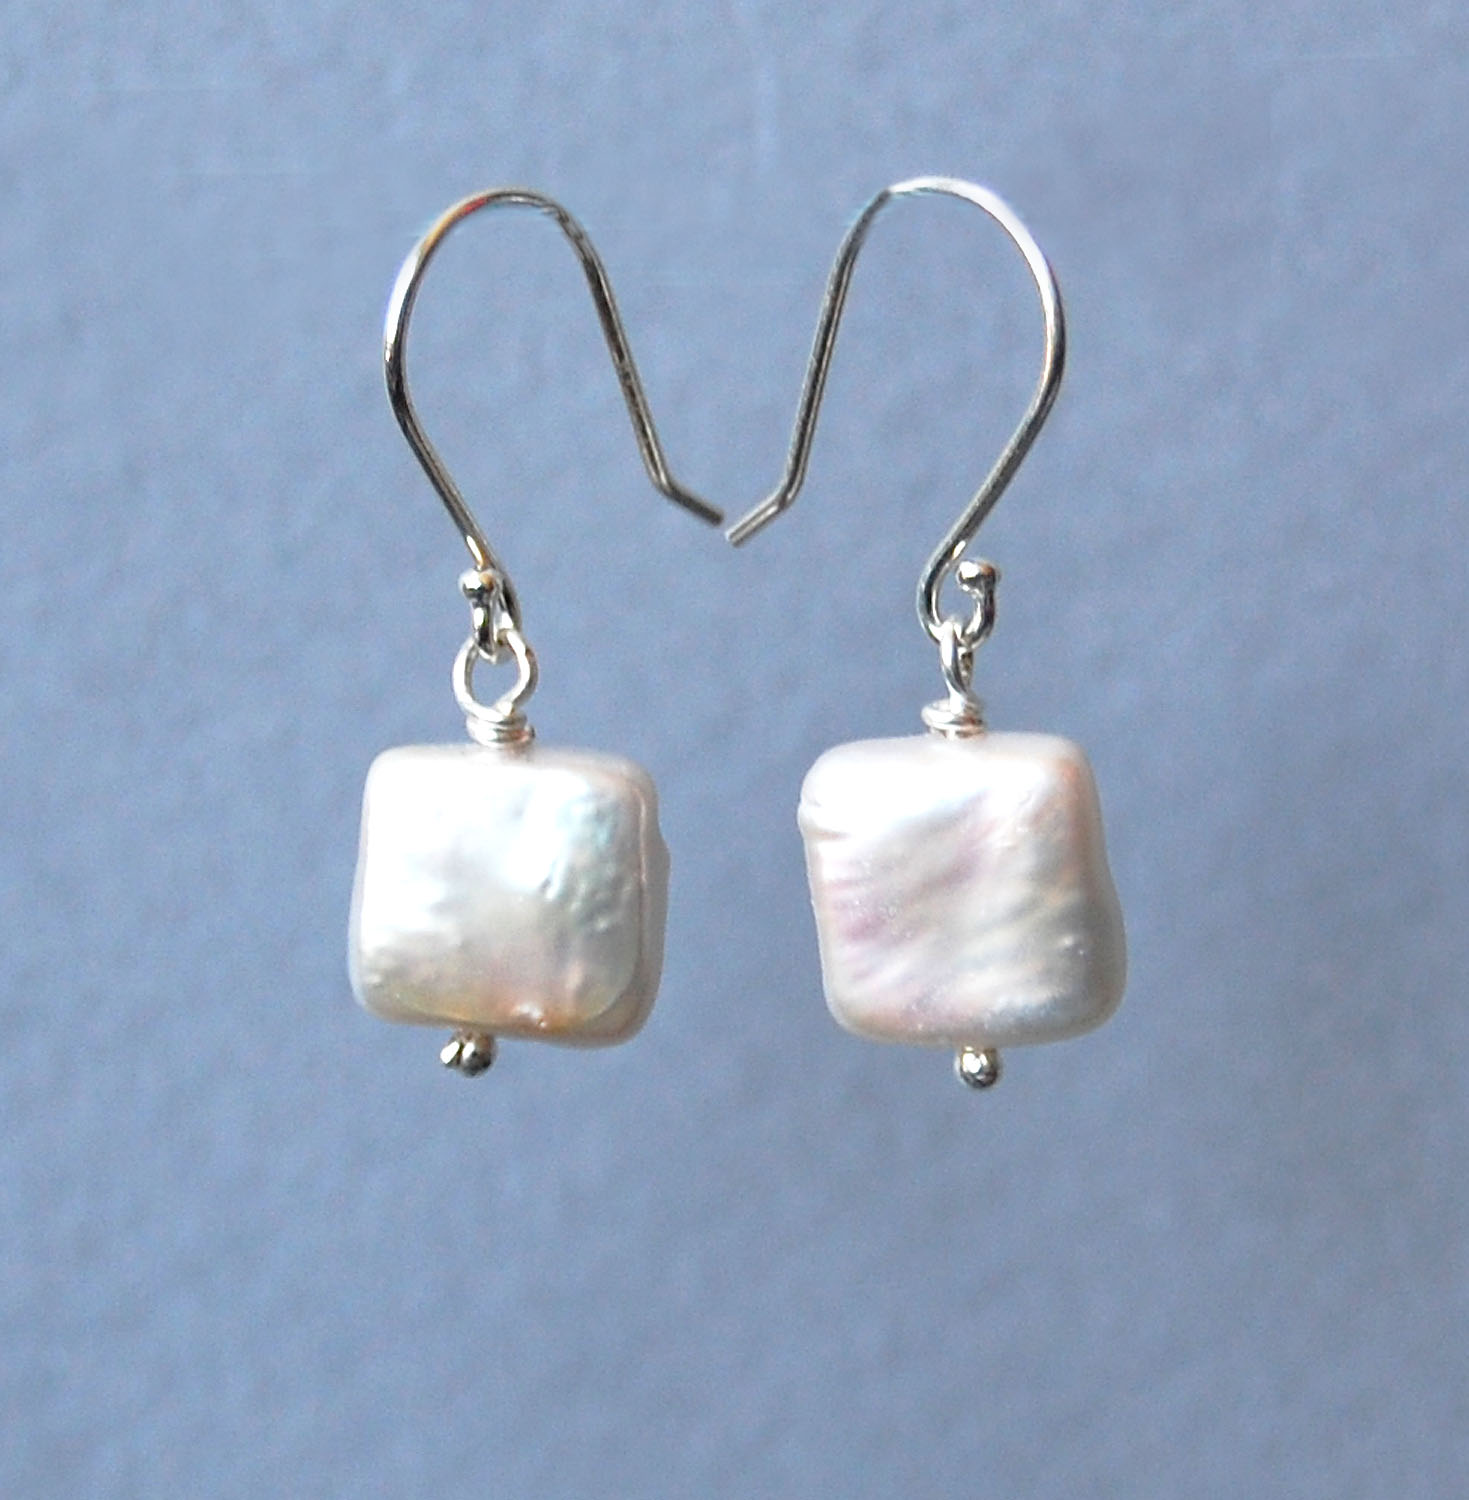 Wendy Bergman - The recipes used to make my jewelry are made with ingredients found in nature. The delicate hues and lusters of Fresh Water Pearls and the rich and subtle textures of Semi-Precious gemstones are its foundation, complemented with precious metals: 14, 18, and 22 Karat Gold and Sterling Silver.After graduating from Northeastern University with a Bachelor of Science Degree in Elementary Education, I knew that my career interests lay elsewhere. I started employment as an assistant Production Manager with a NY costume jewelry designer and never turned back!